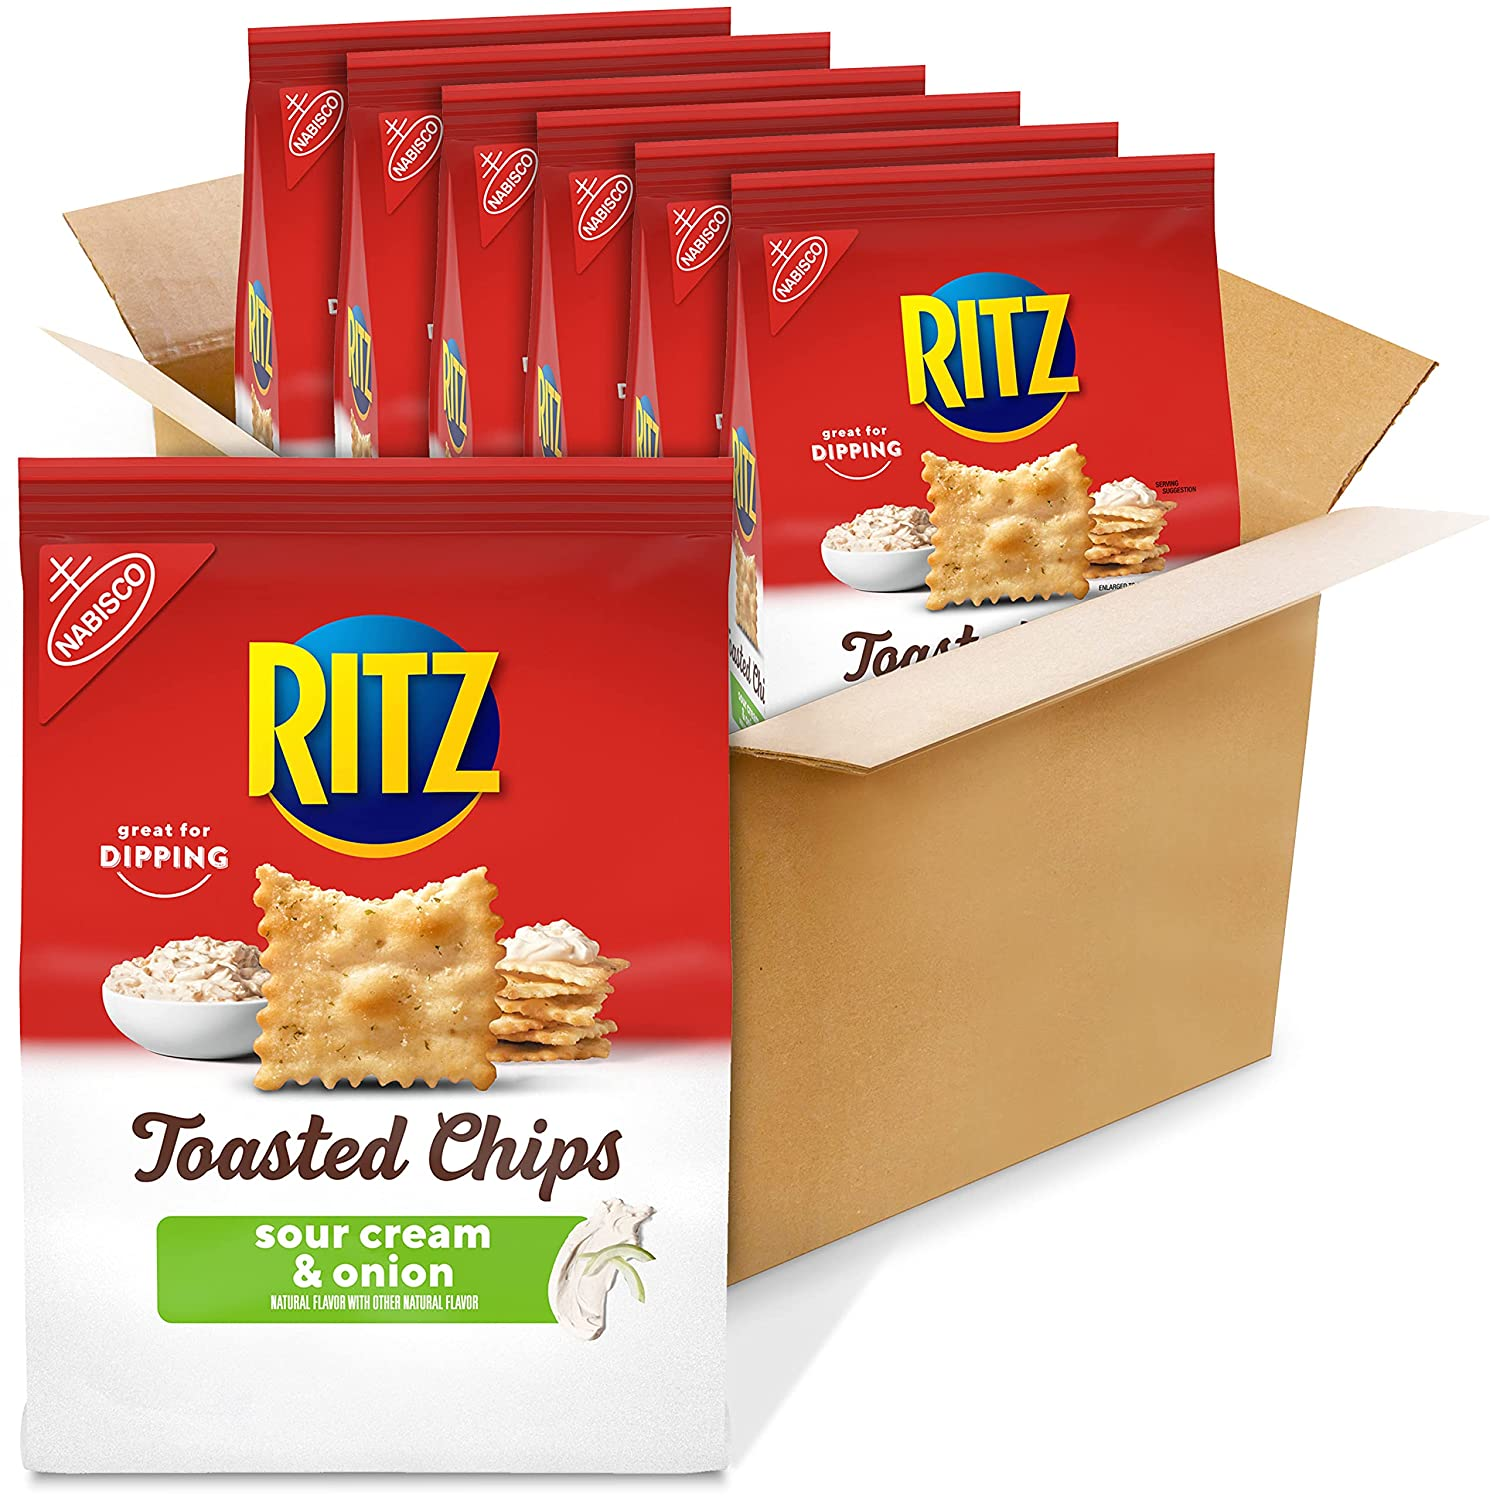 RITZ Toasted Chips Sour Cream and Onion Bag List Recommendation price 6 Crackers 8.1 - oz